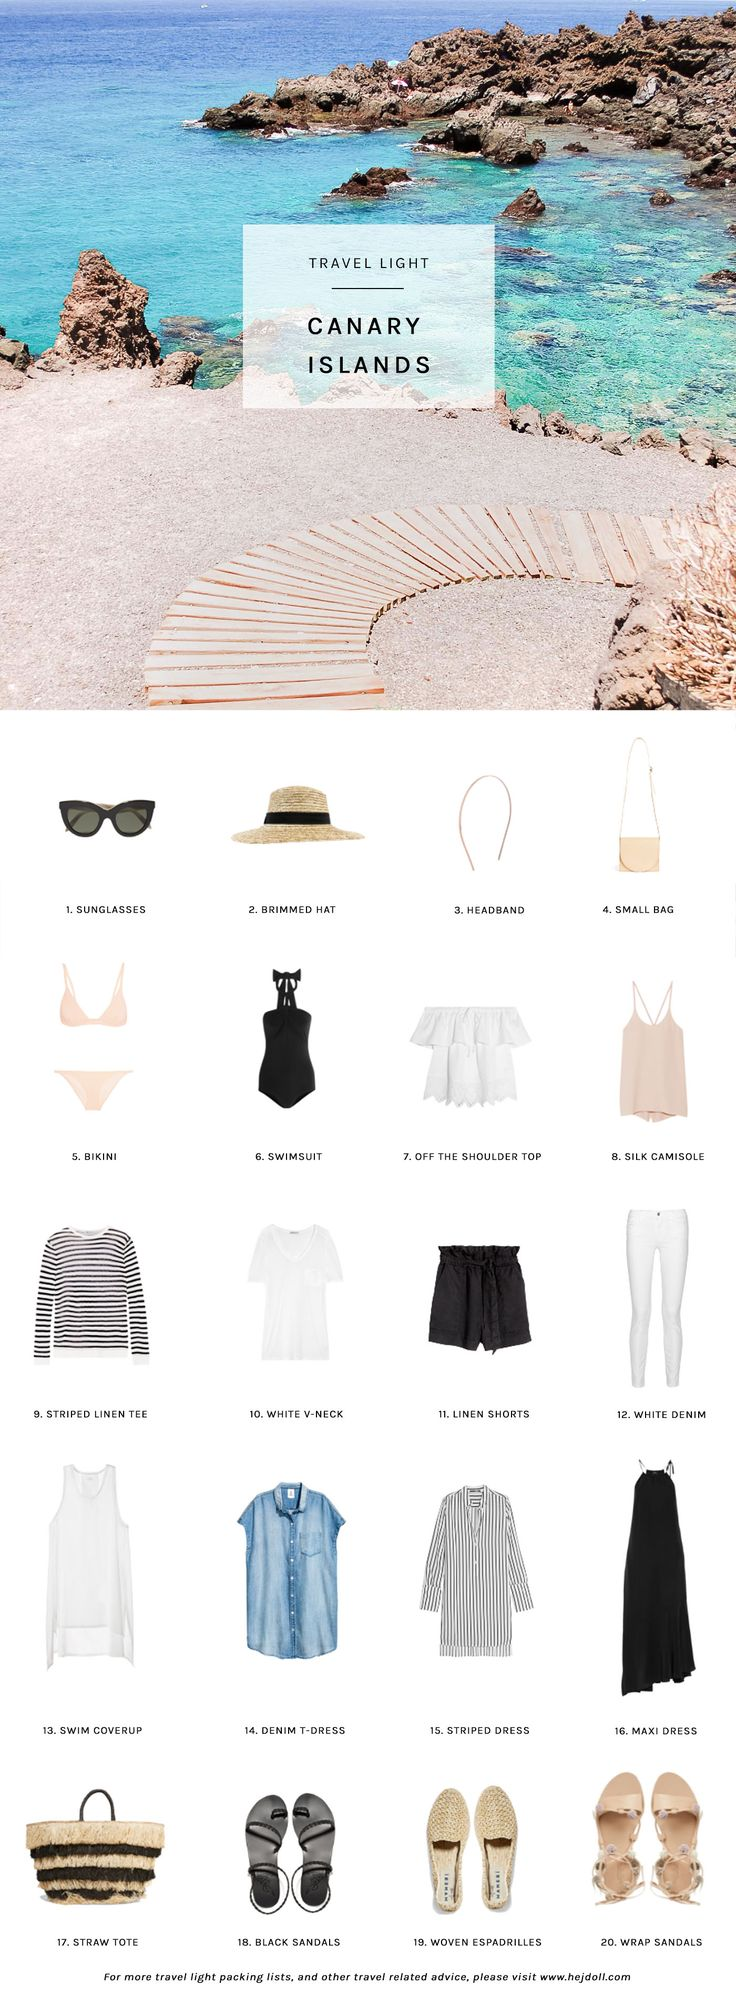 Pack for the Canary Islands   hej doll   Bloglovin'